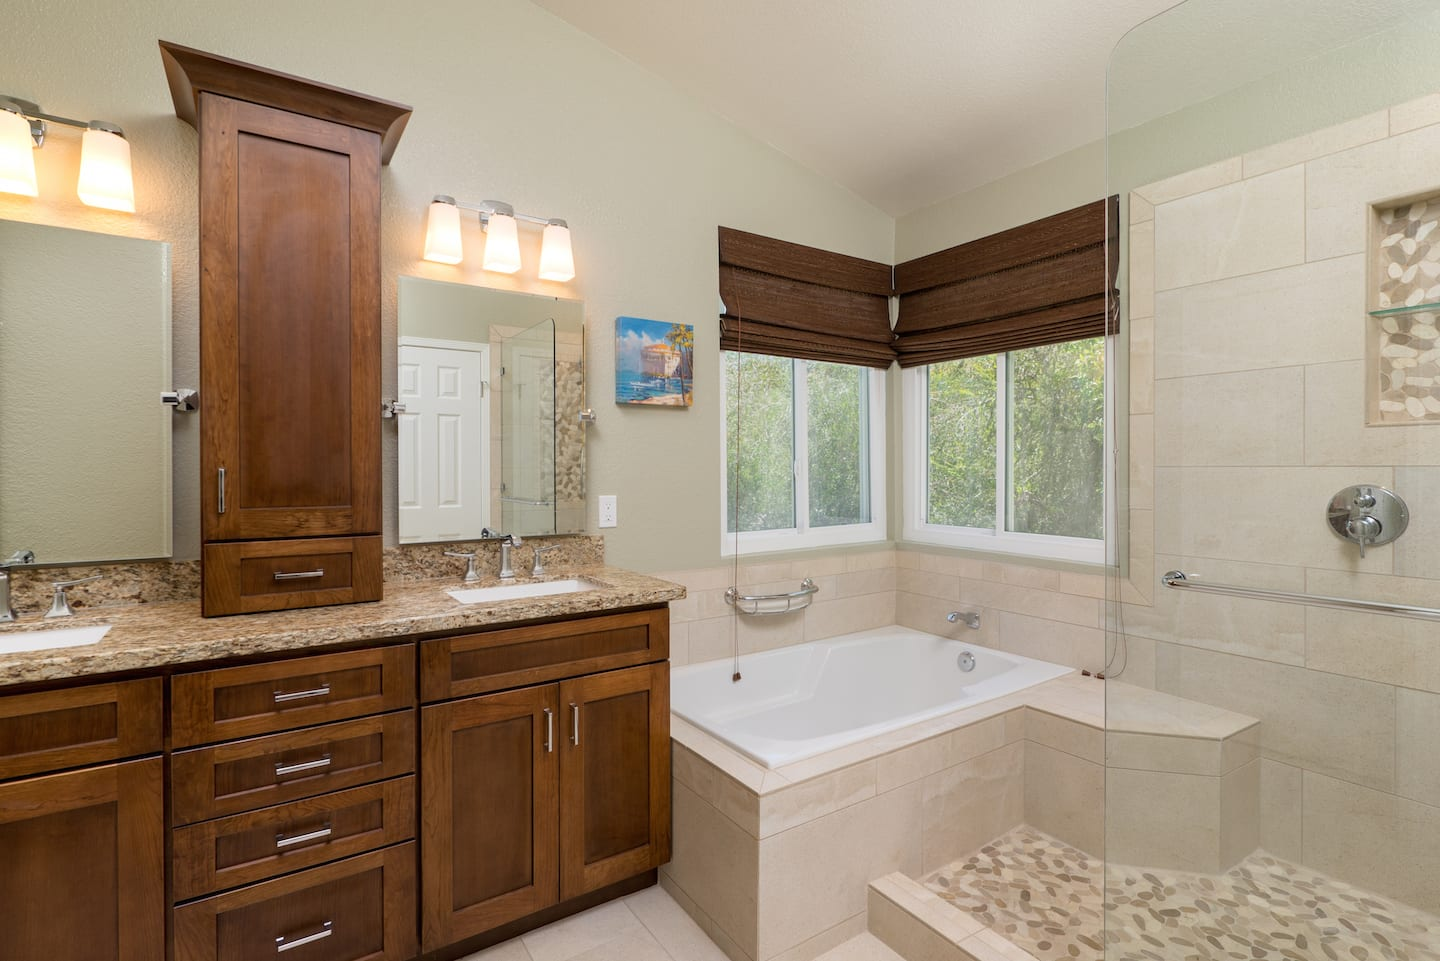 Bathroom Upgrade how to save money on a bathroom remodel | angie's list